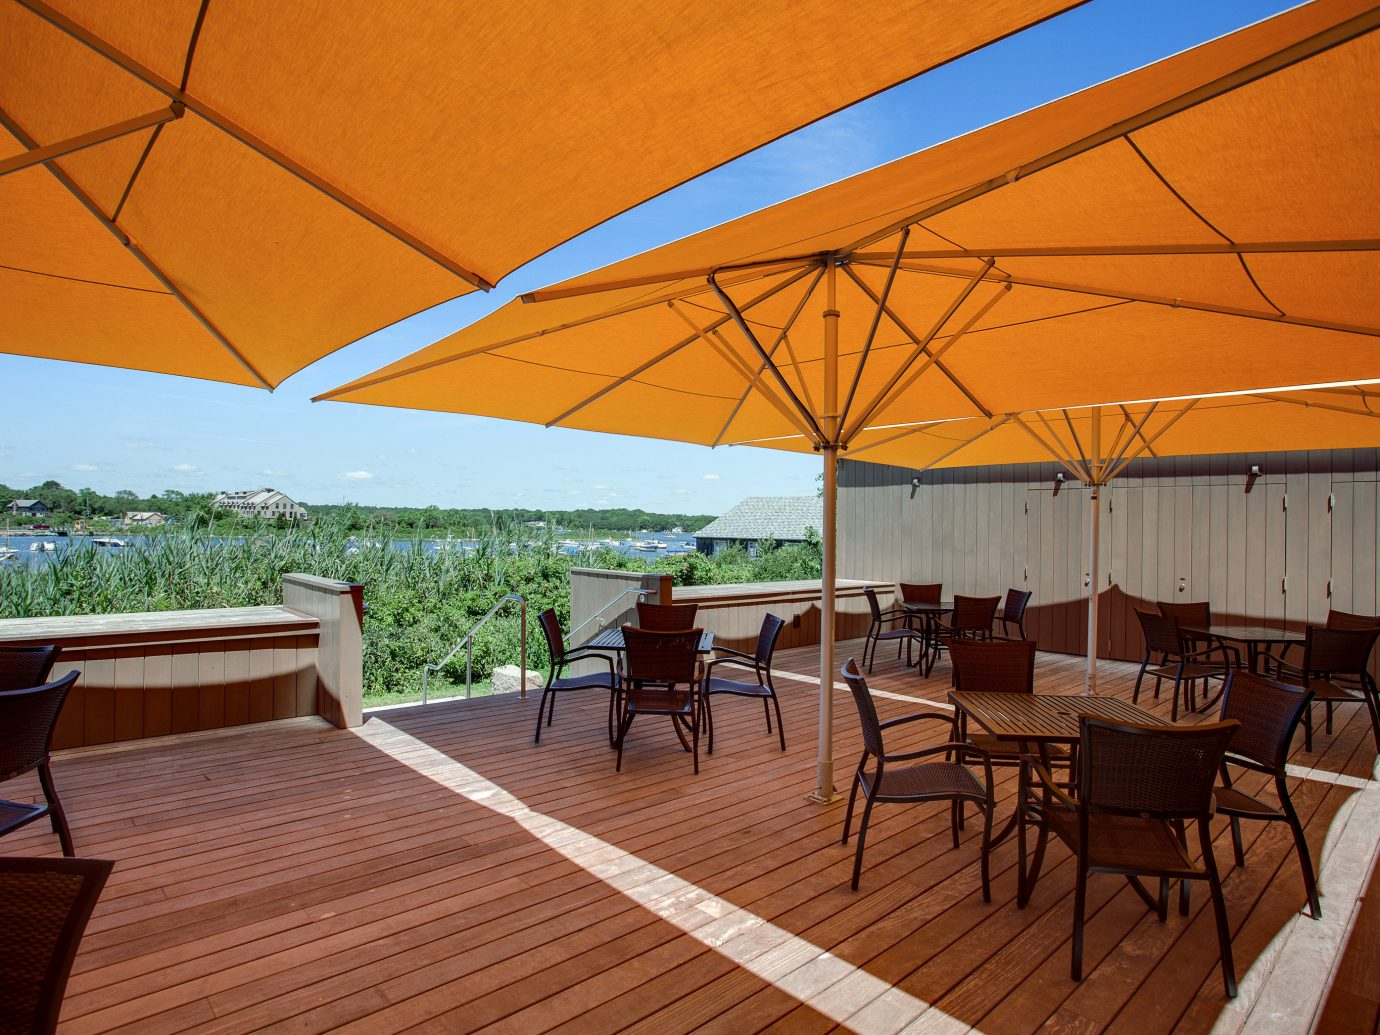 Classic Dining Drink Eat Inn Nature Outdoors Waterfront table chair floor umbrella accessory wood estate outdoor structure Resort